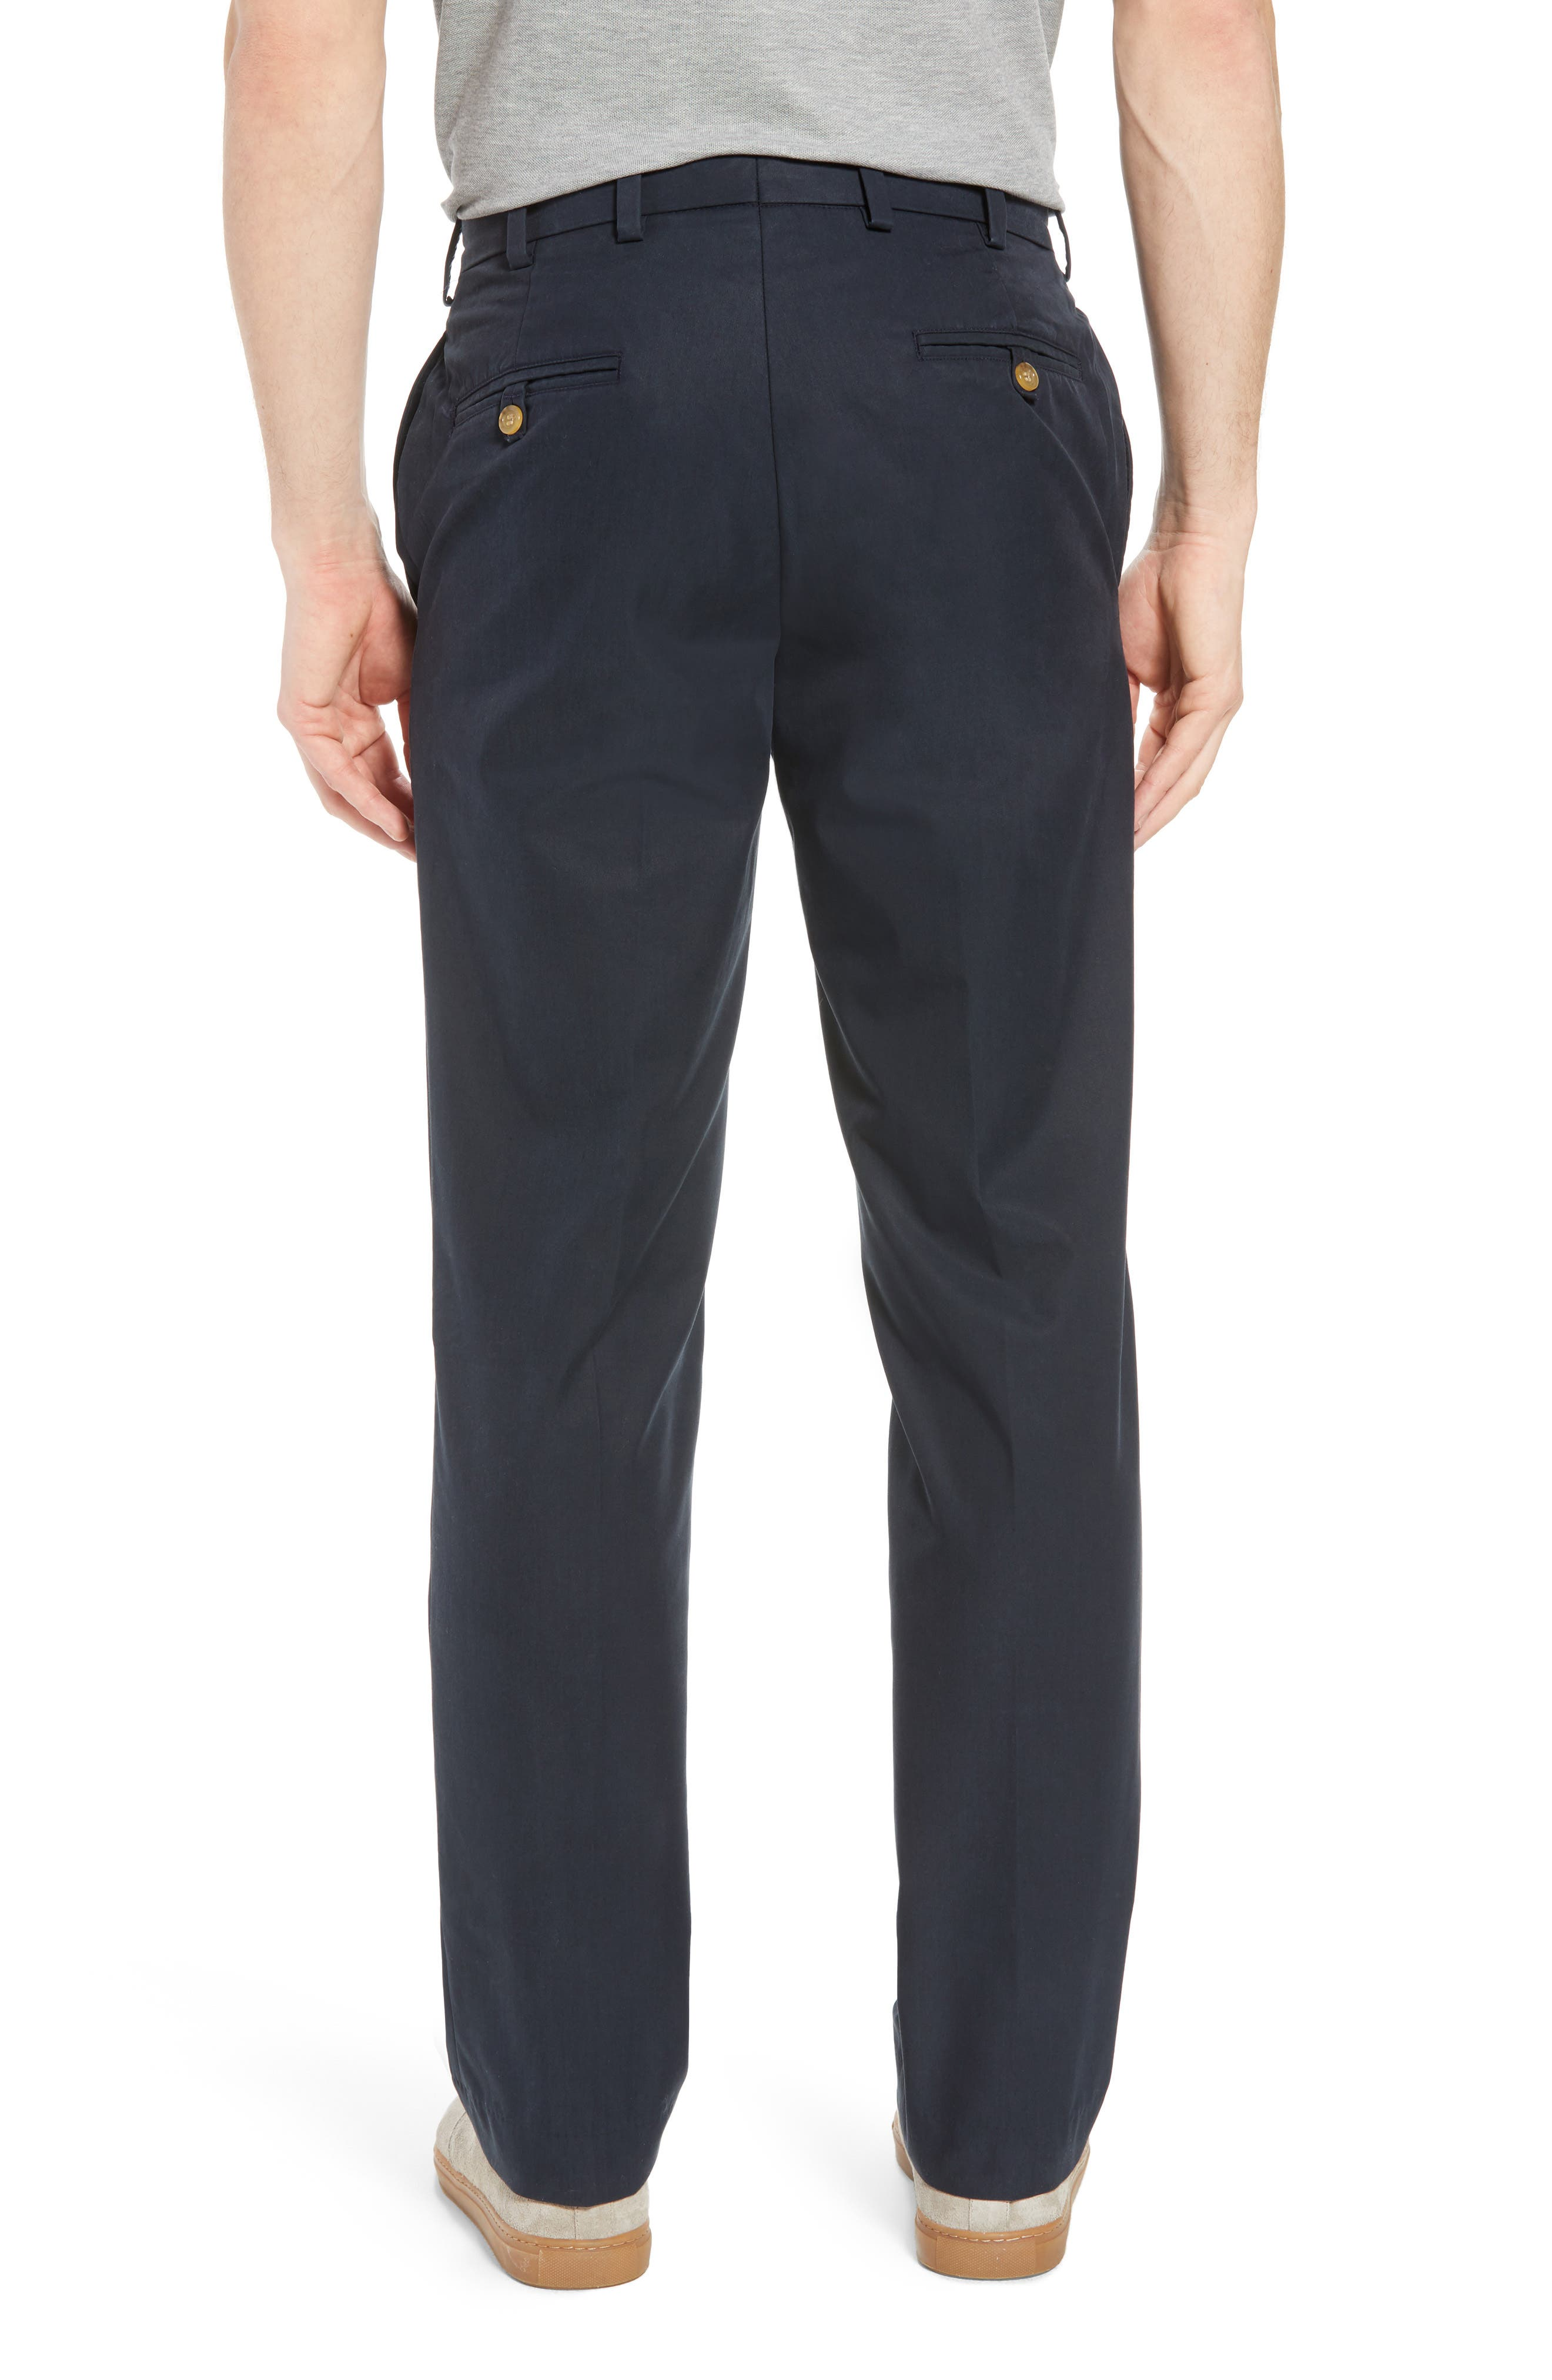 M2 Classic Fit Flat Front Travel Twill Pants,                             Alternate thumbnail 2, color,                             Navy